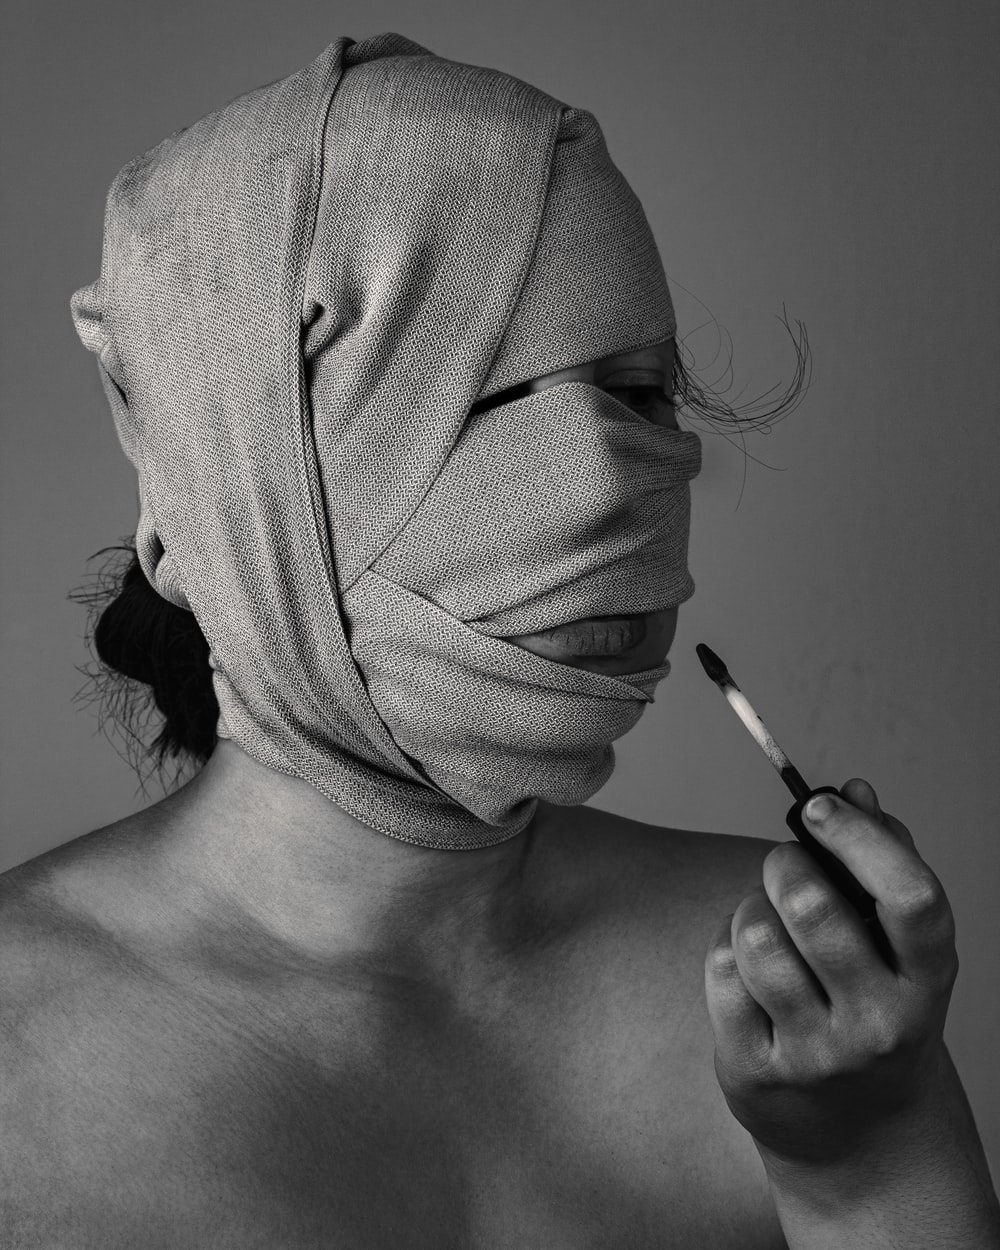 grayscal photo of woman with bandage on face